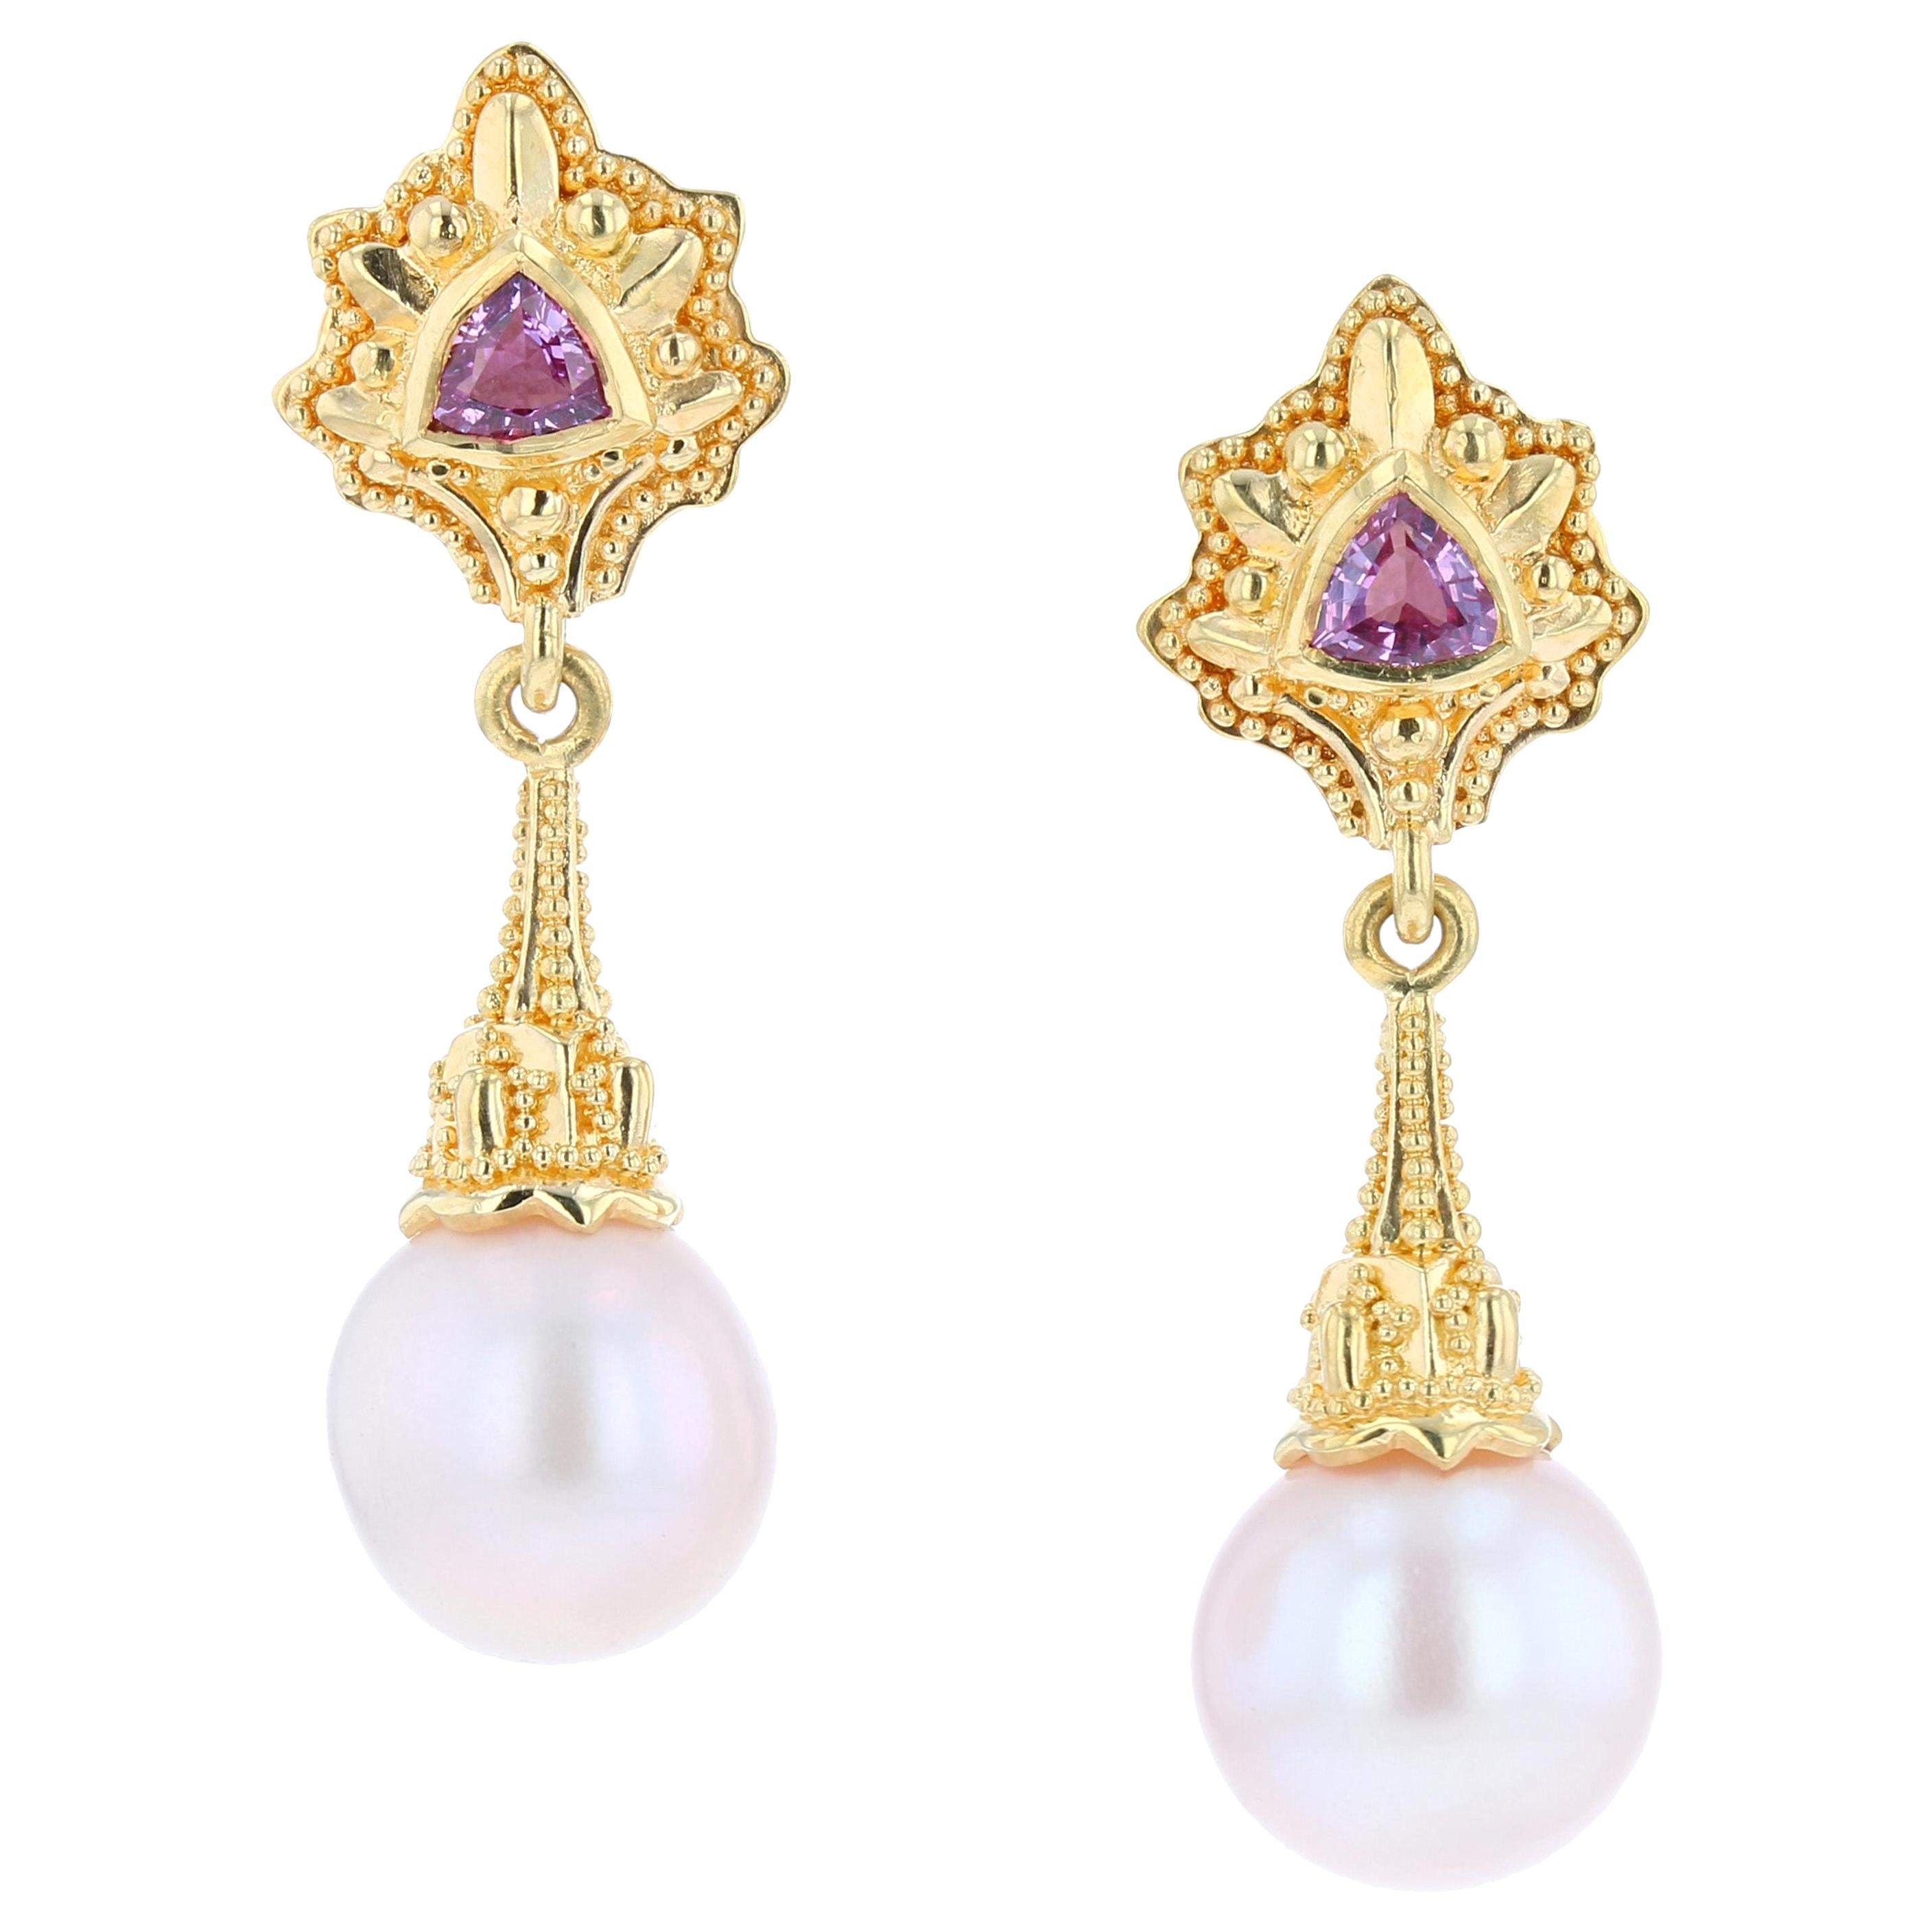 Kent Raible 18 Karat Gold Pink Sapphire and Pearl Drop Earrings with Granulation